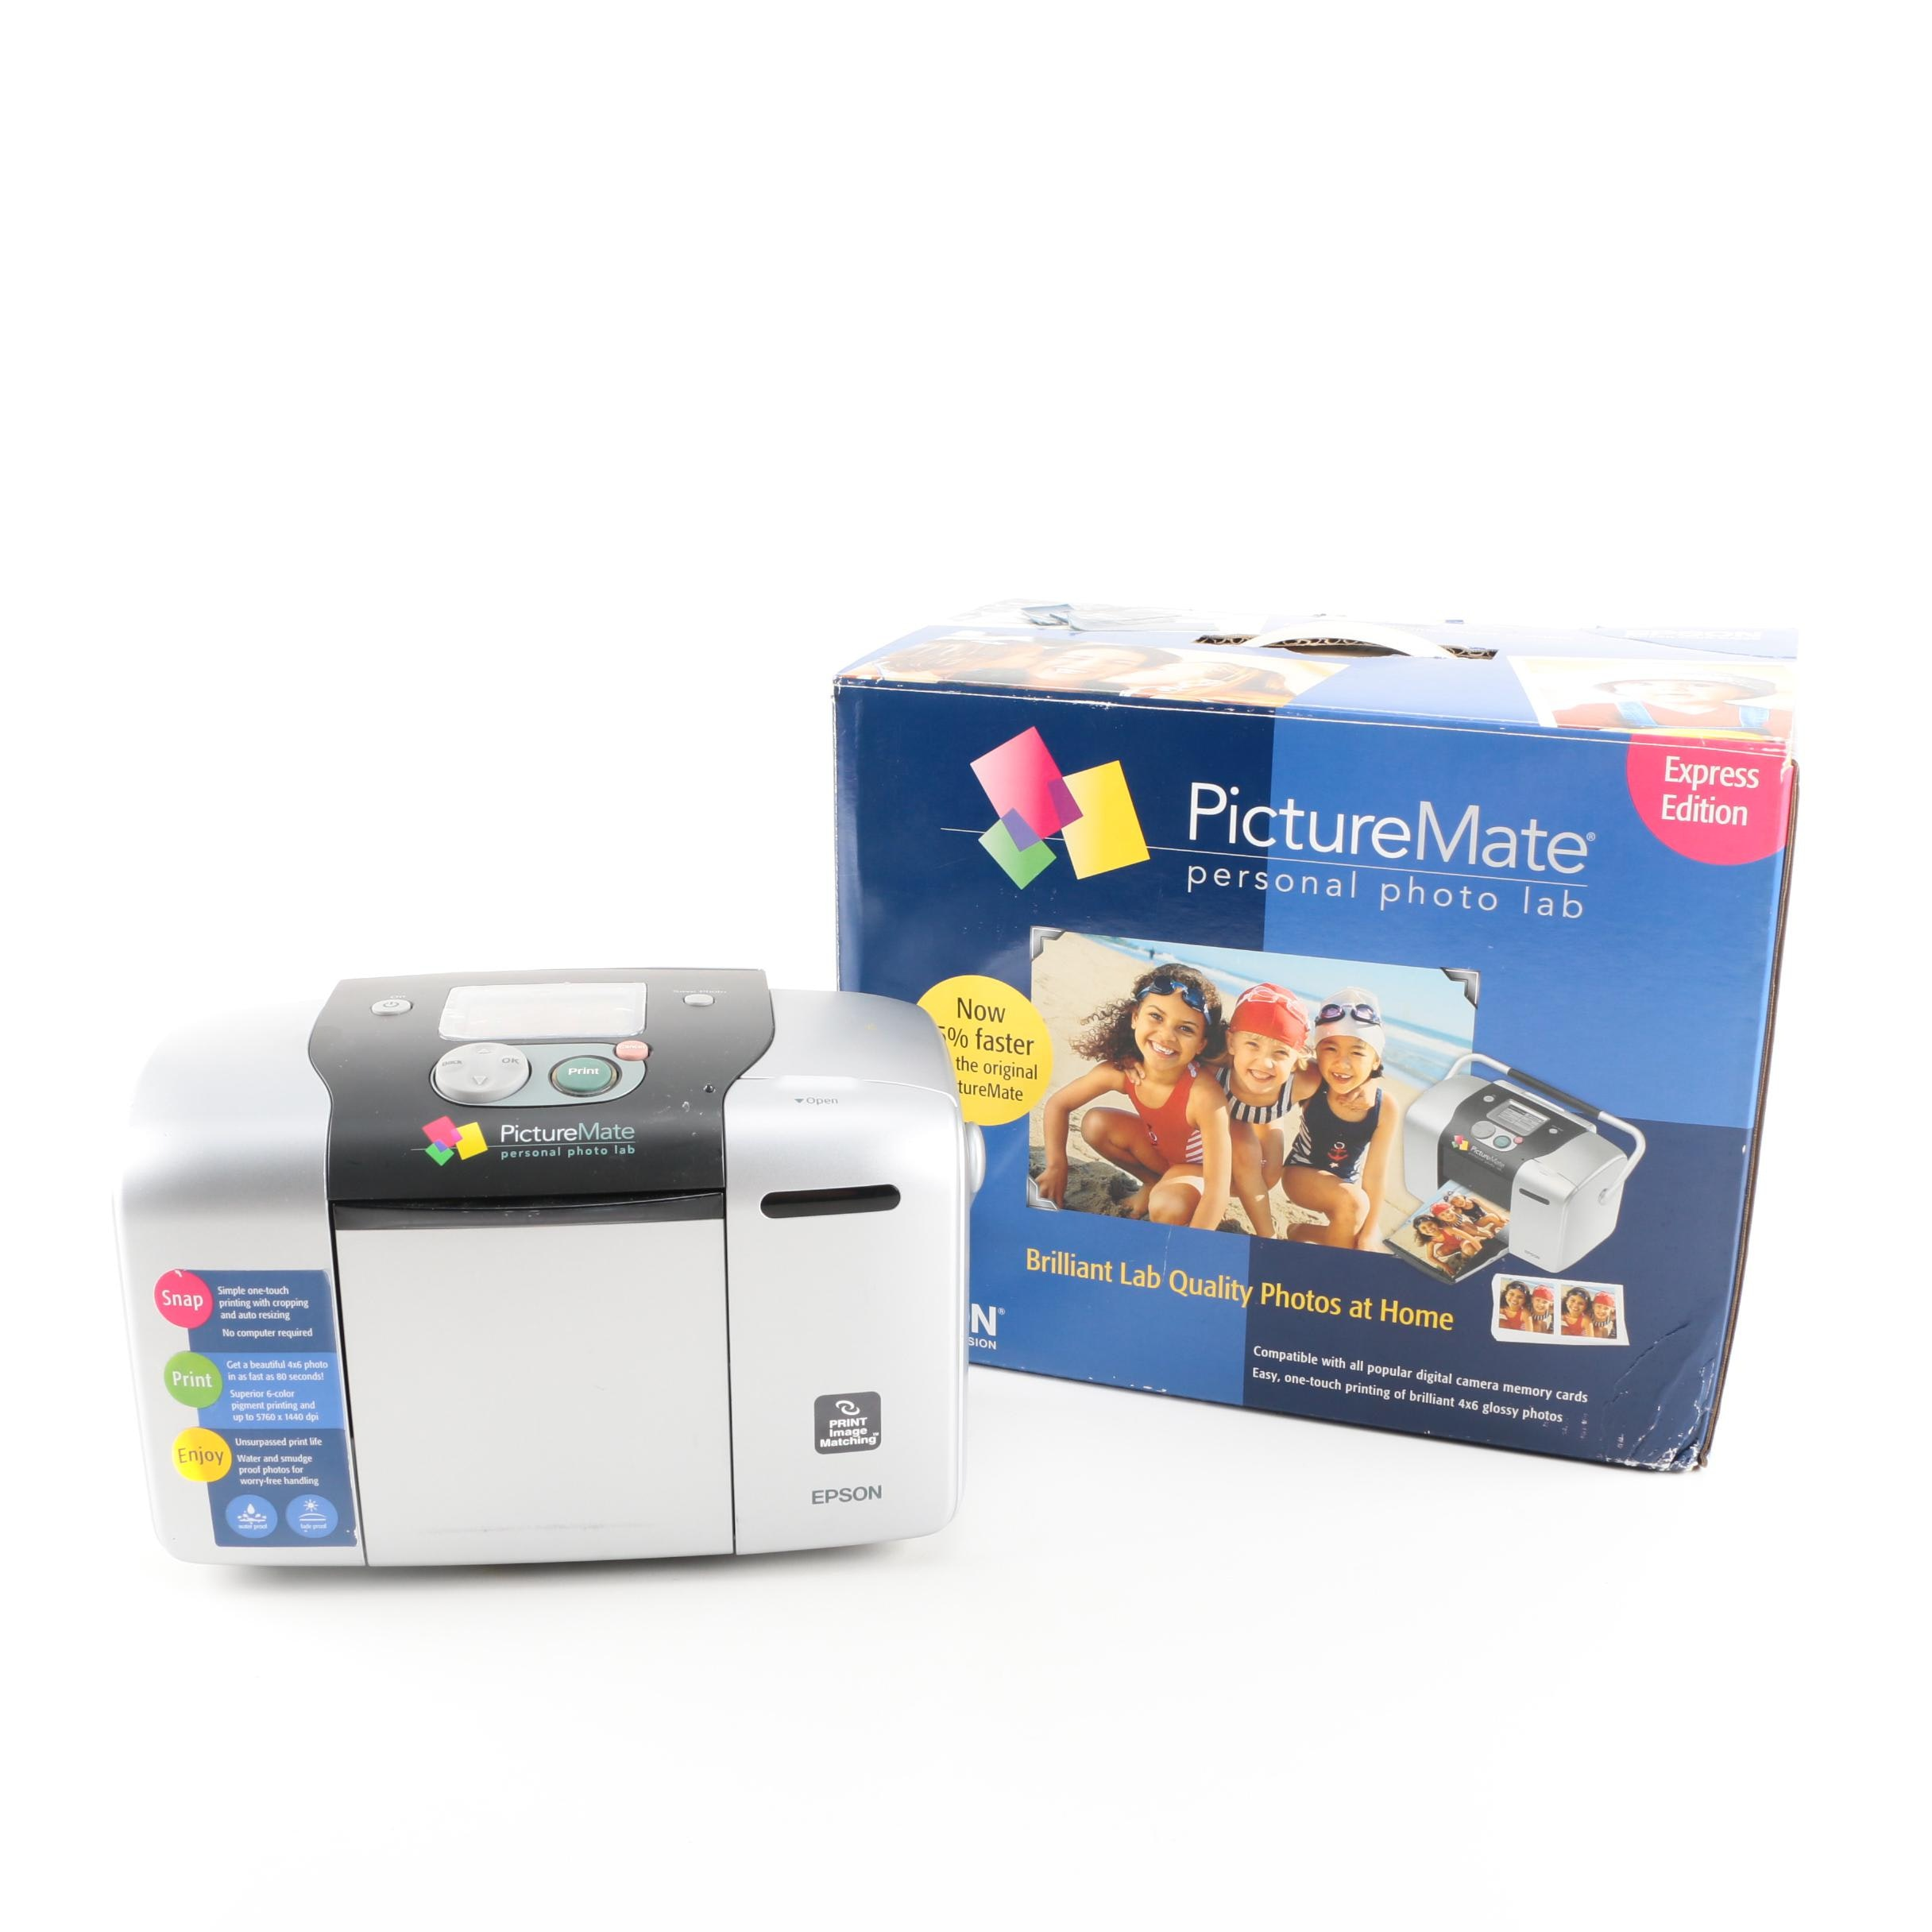 Epson Picturemate Personal Photo Lab Express Edition Ebth